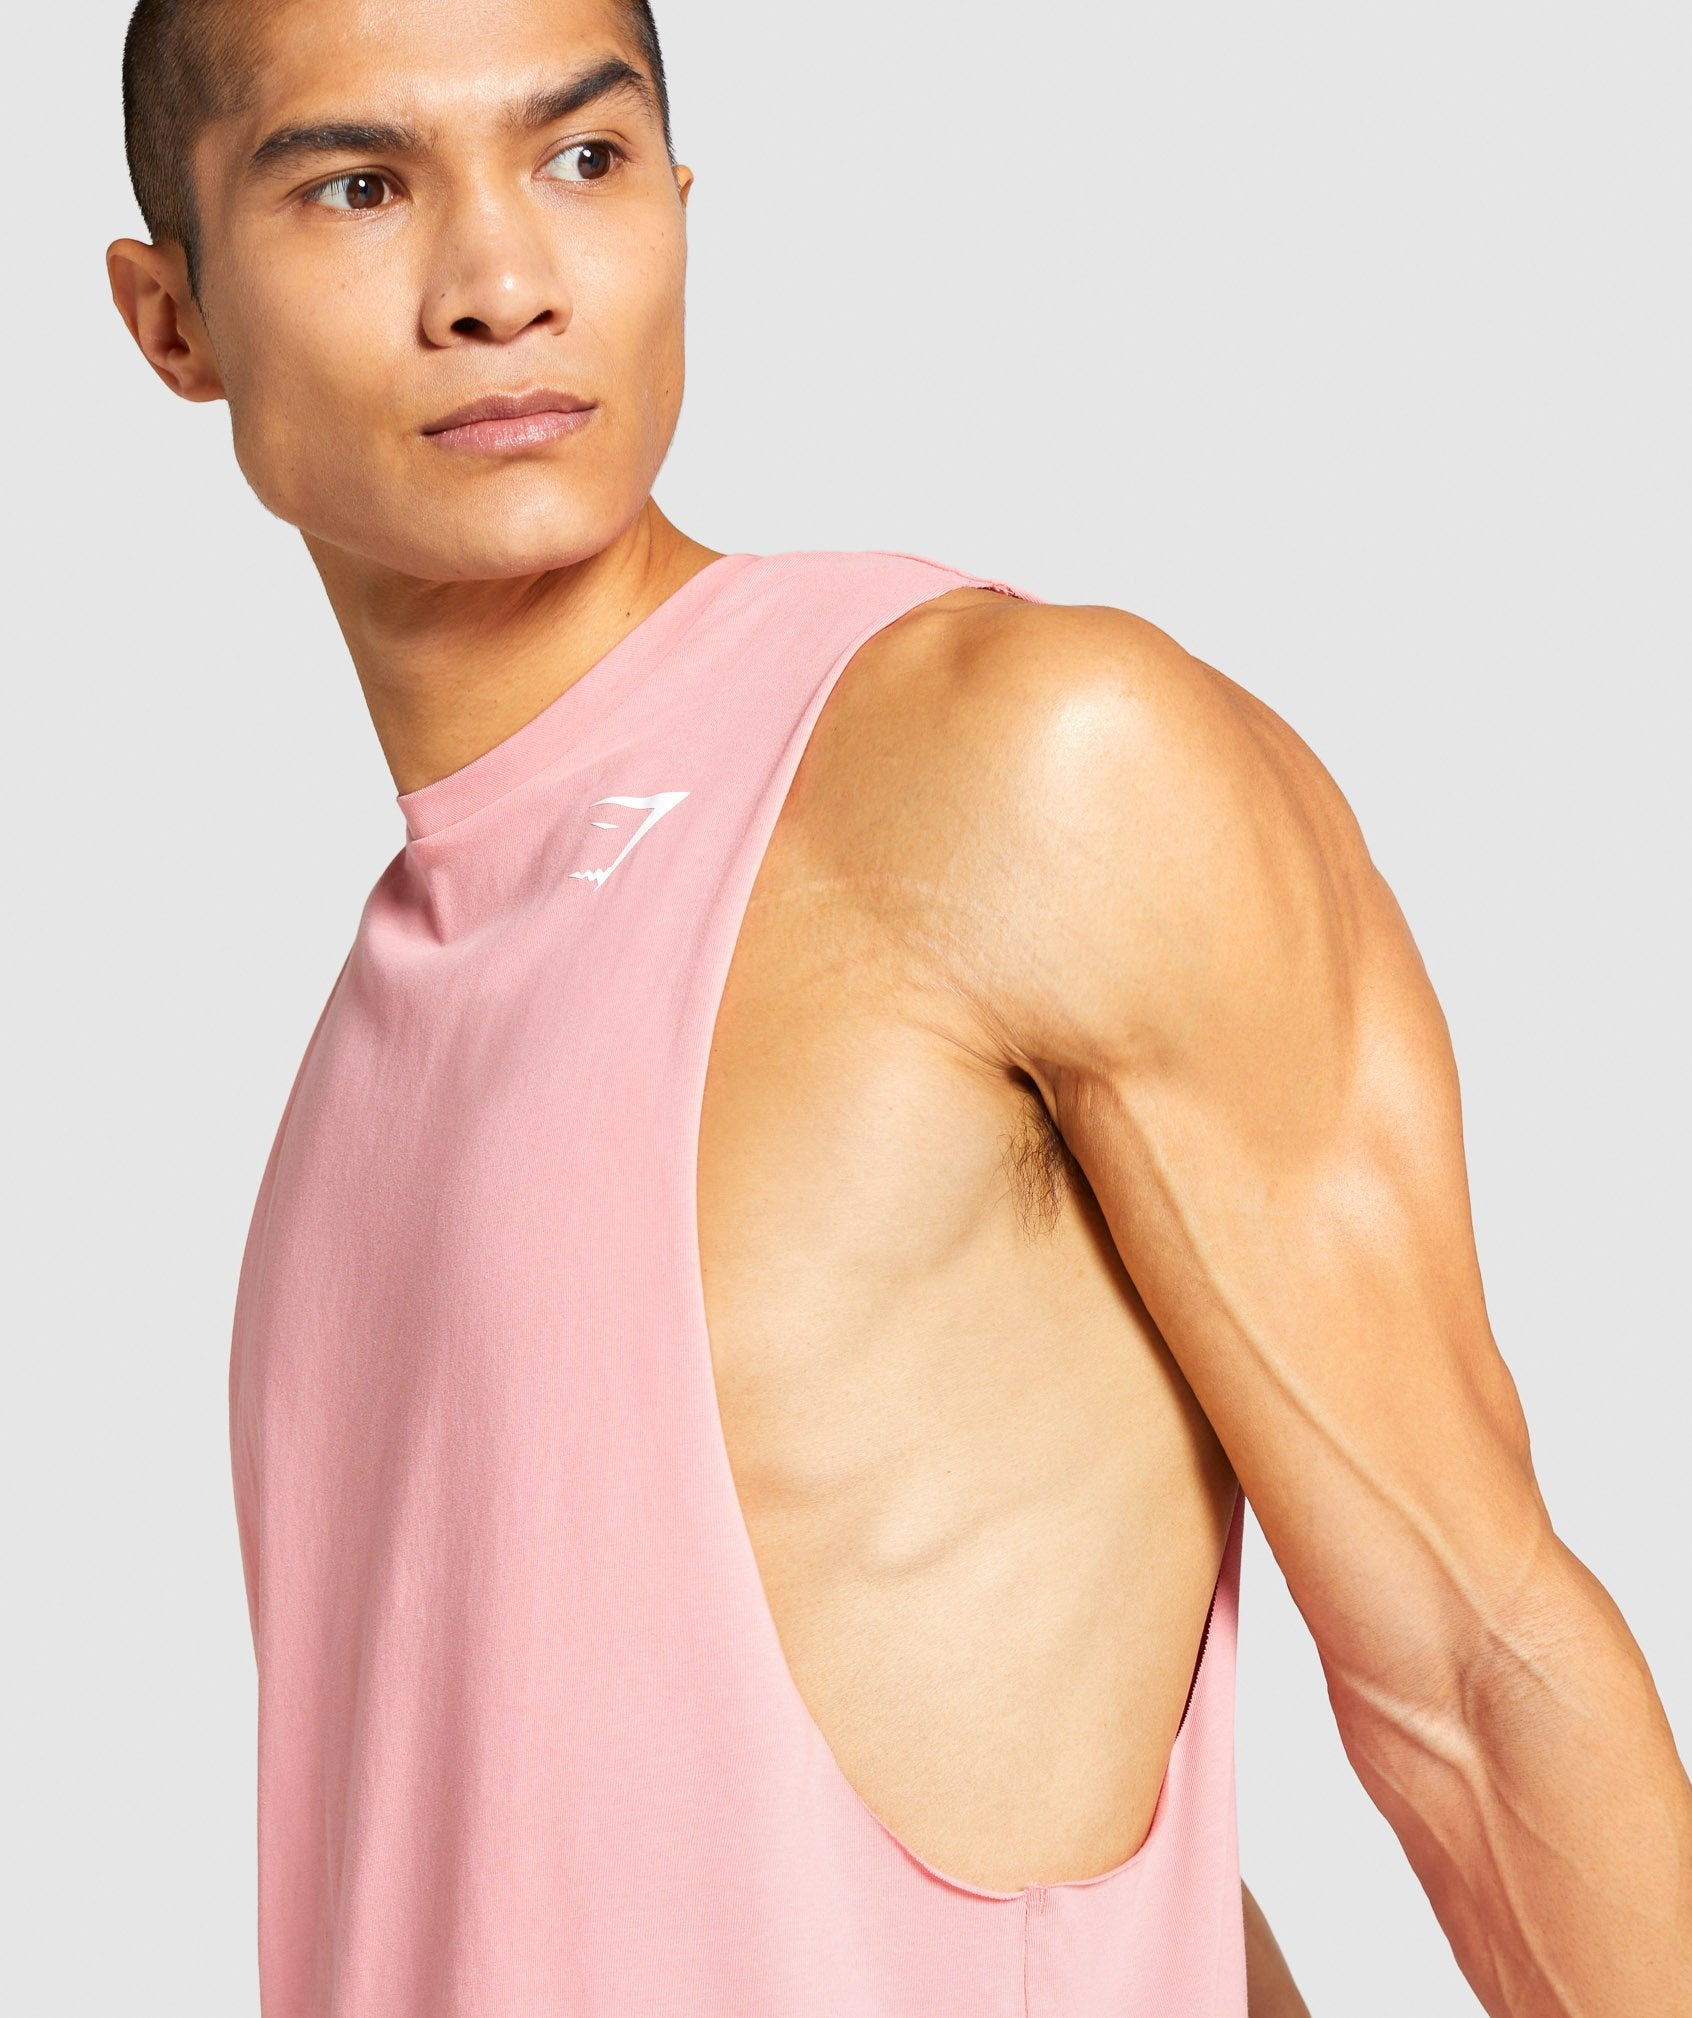 Classier: Buy Gymshark Critical Drop Arm Tank - Coral - Gymshark